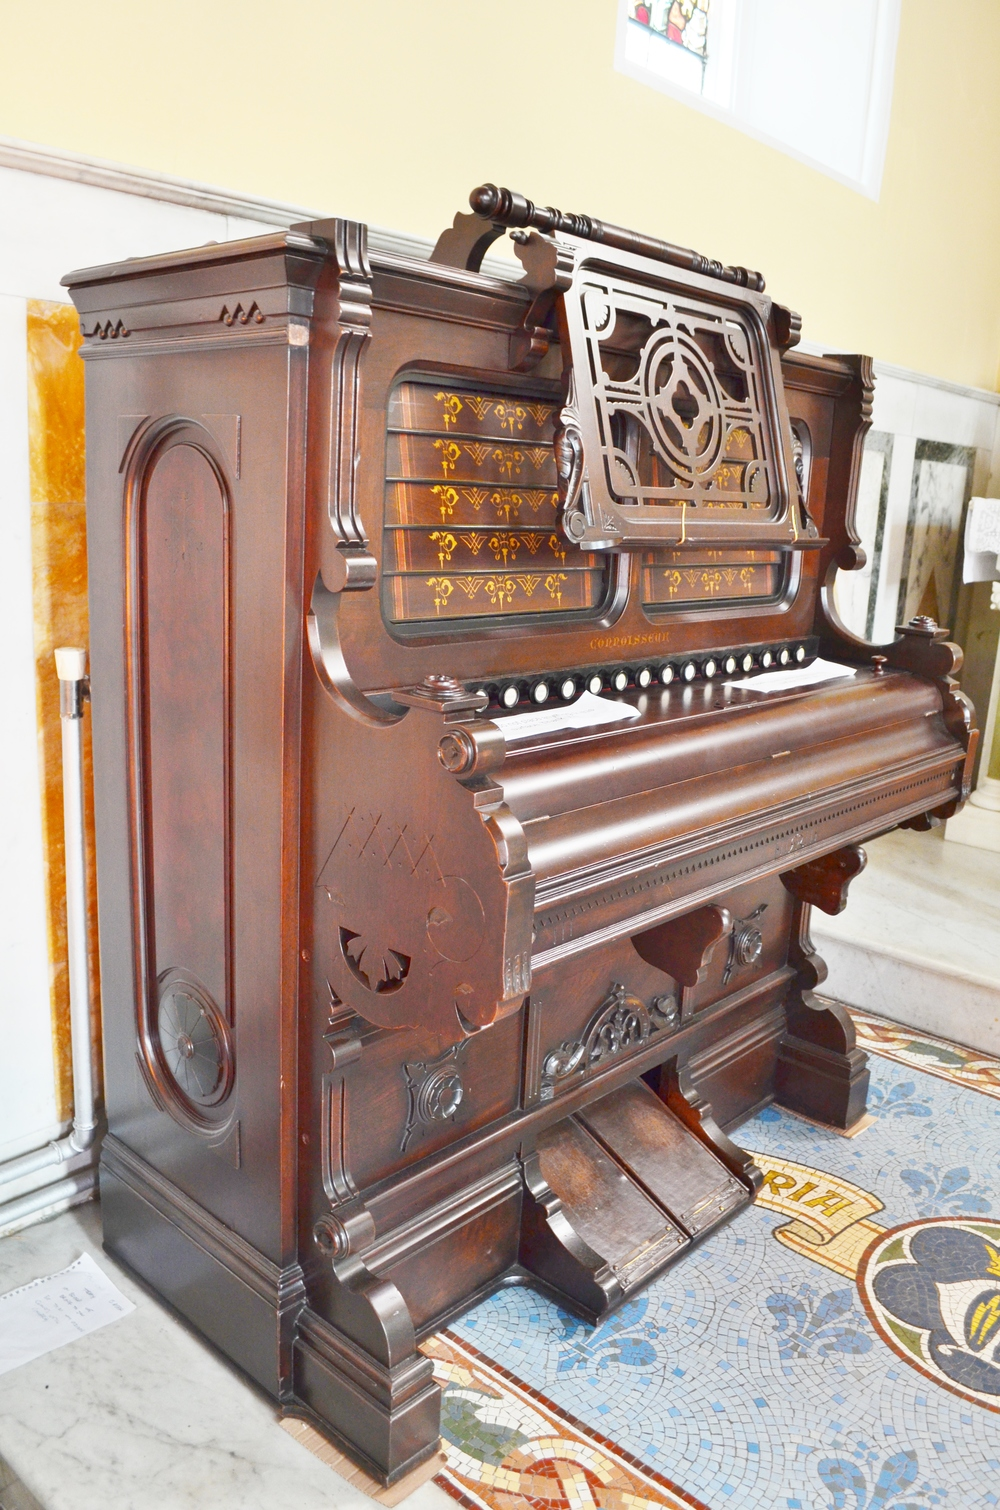 Smith of Boston, 1863 Reed Organ Restored 2012-2013